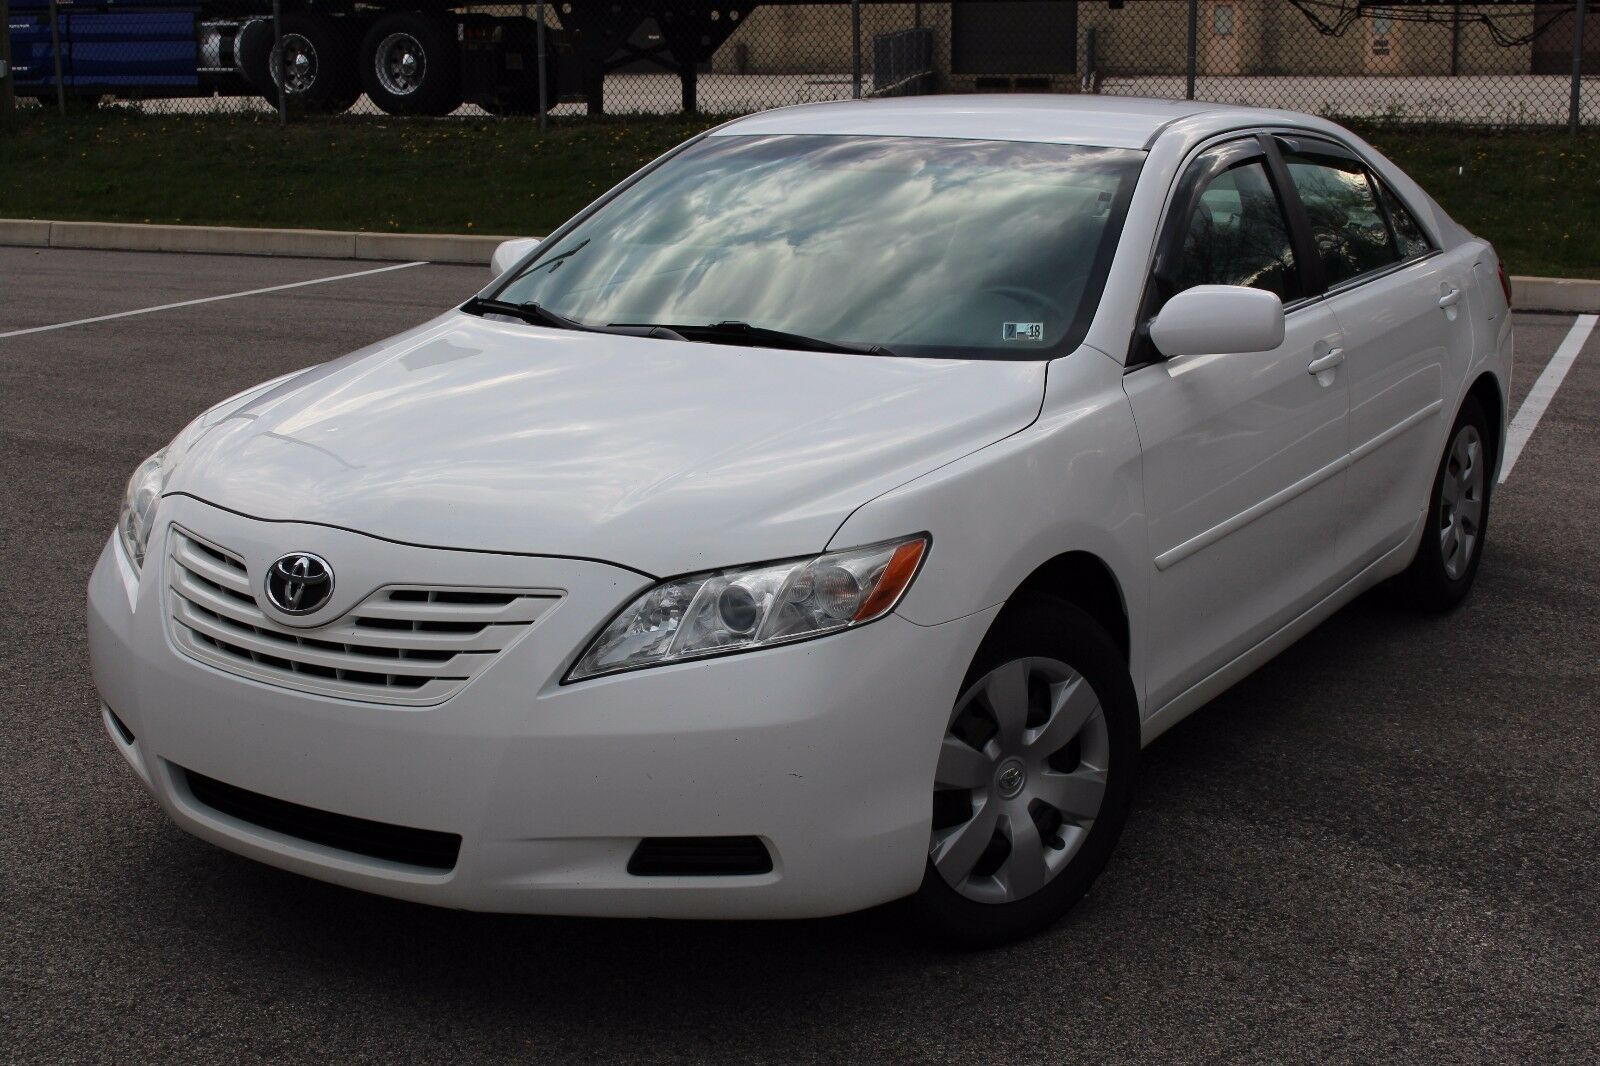 2009 Toyota Camry Le 1 Owner Remote Start No Reserve